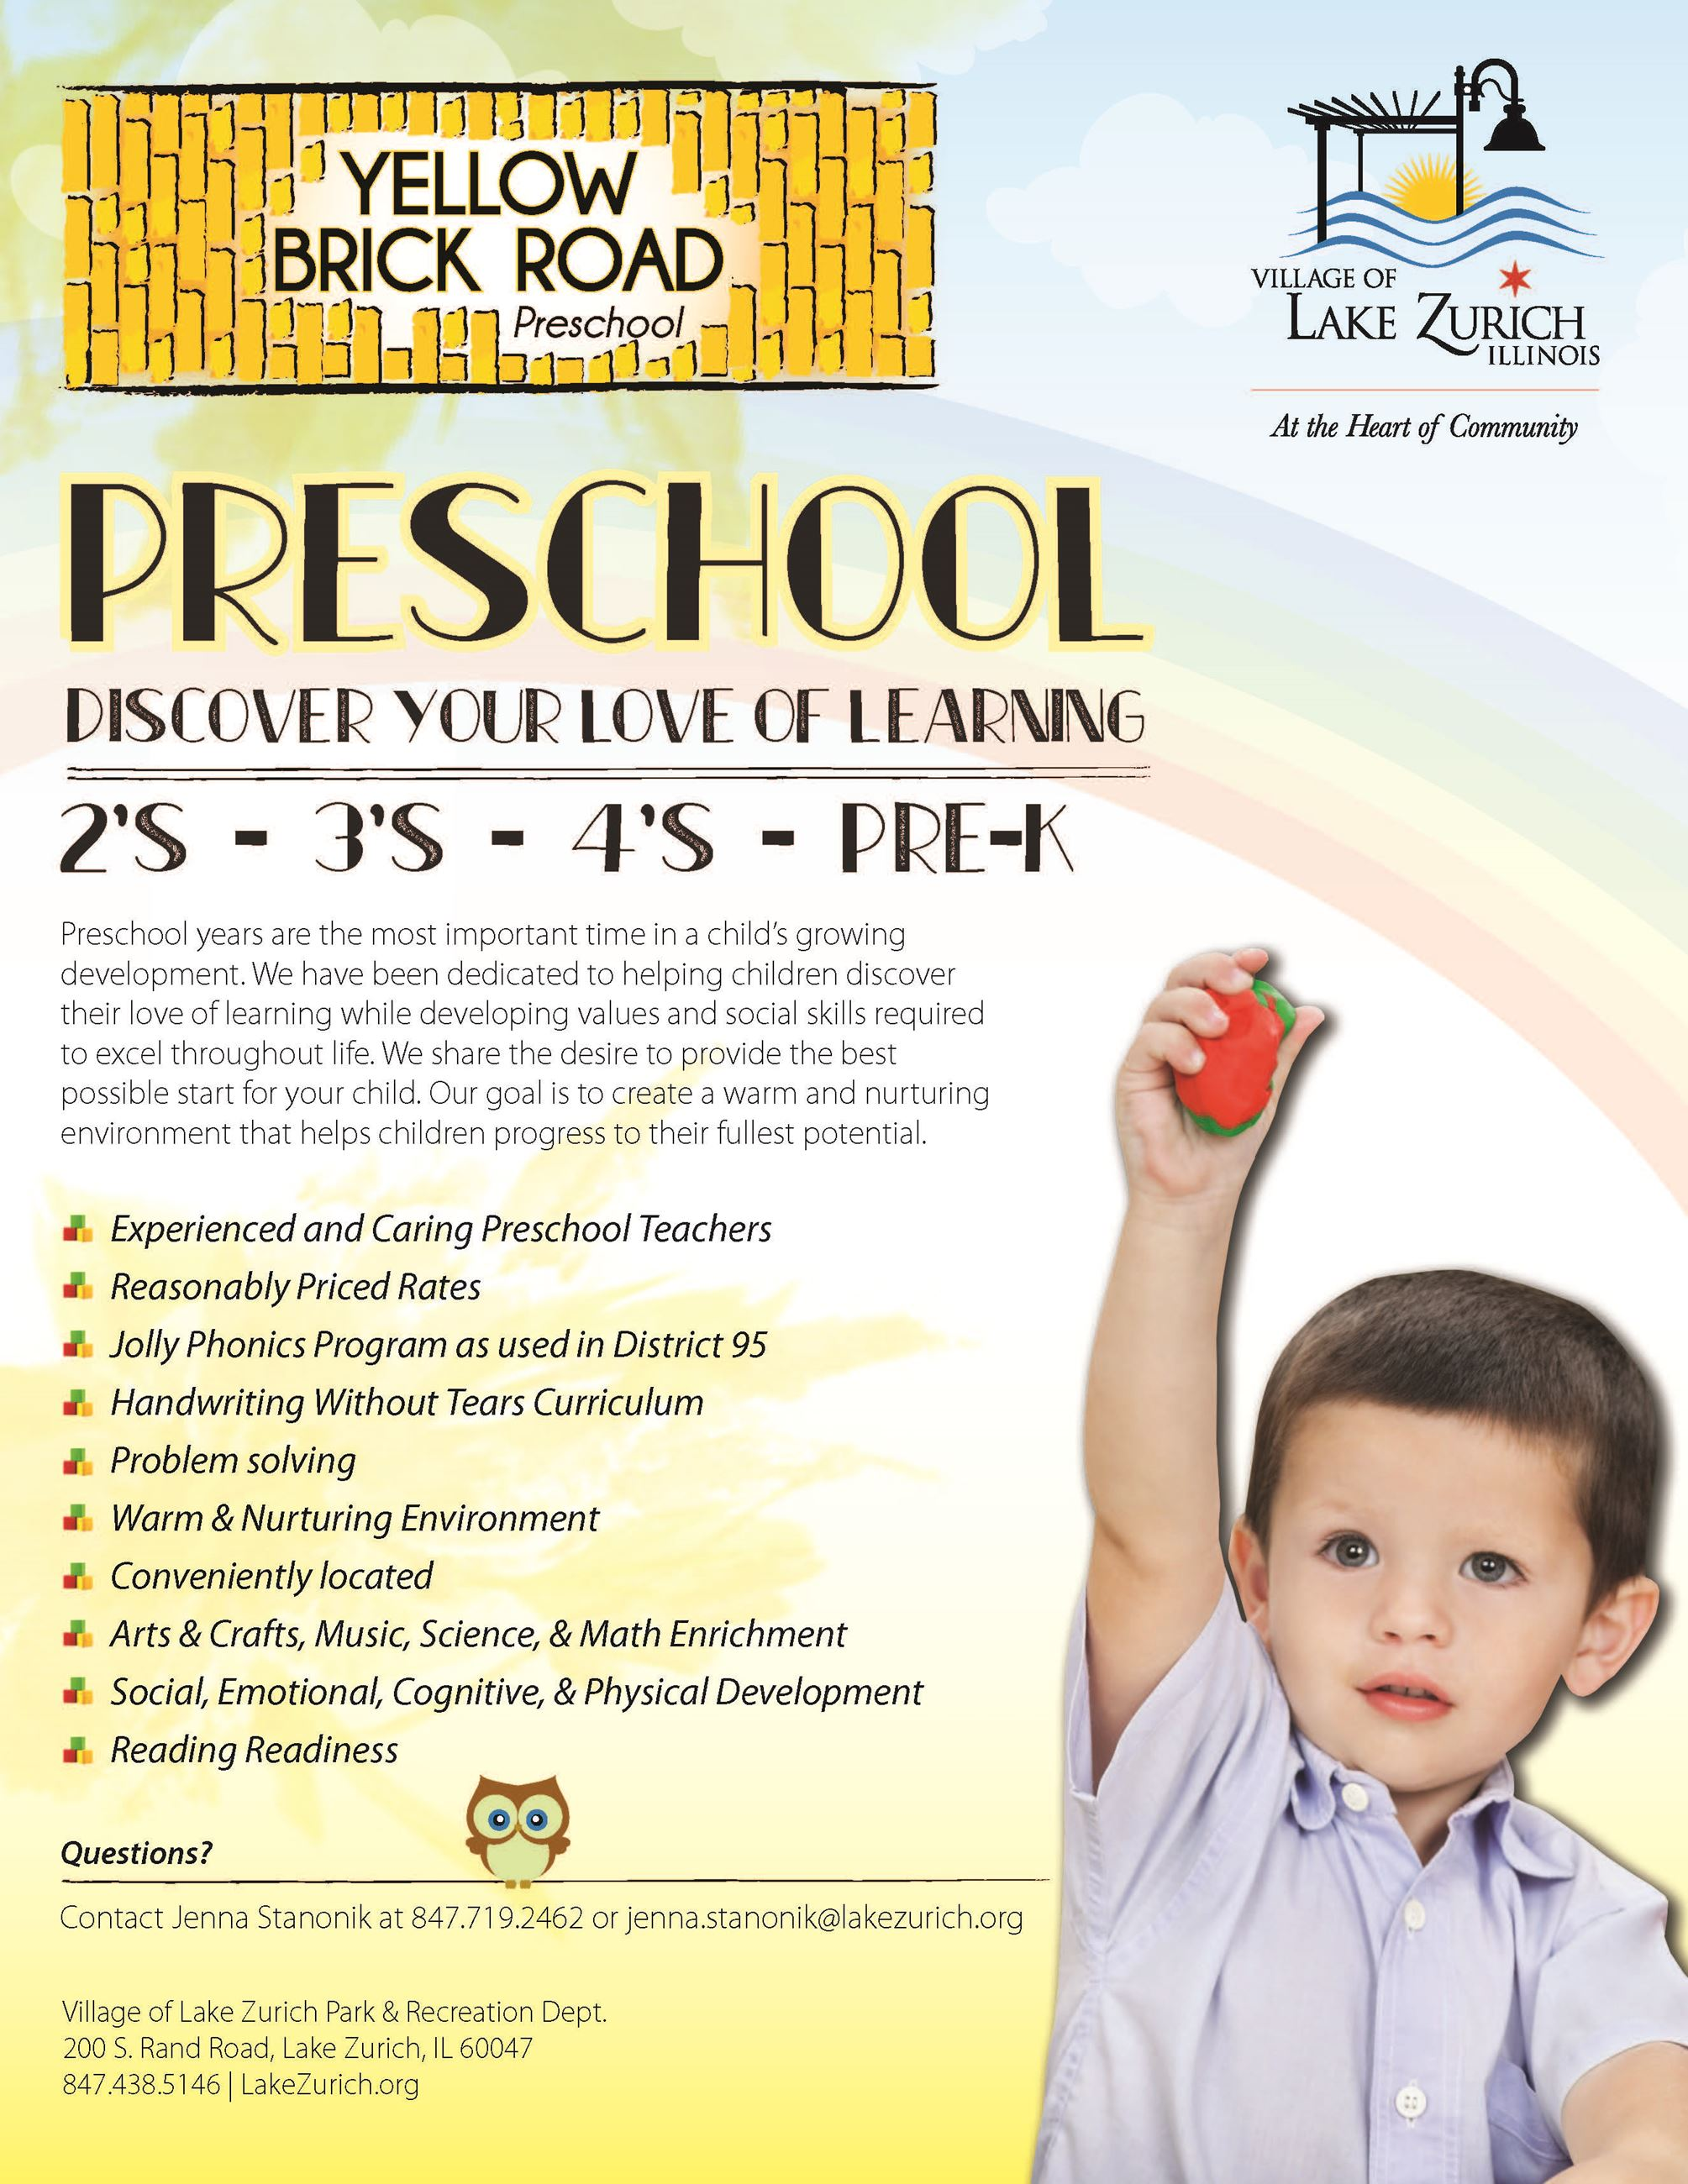 Yellow Brock Road Preschool